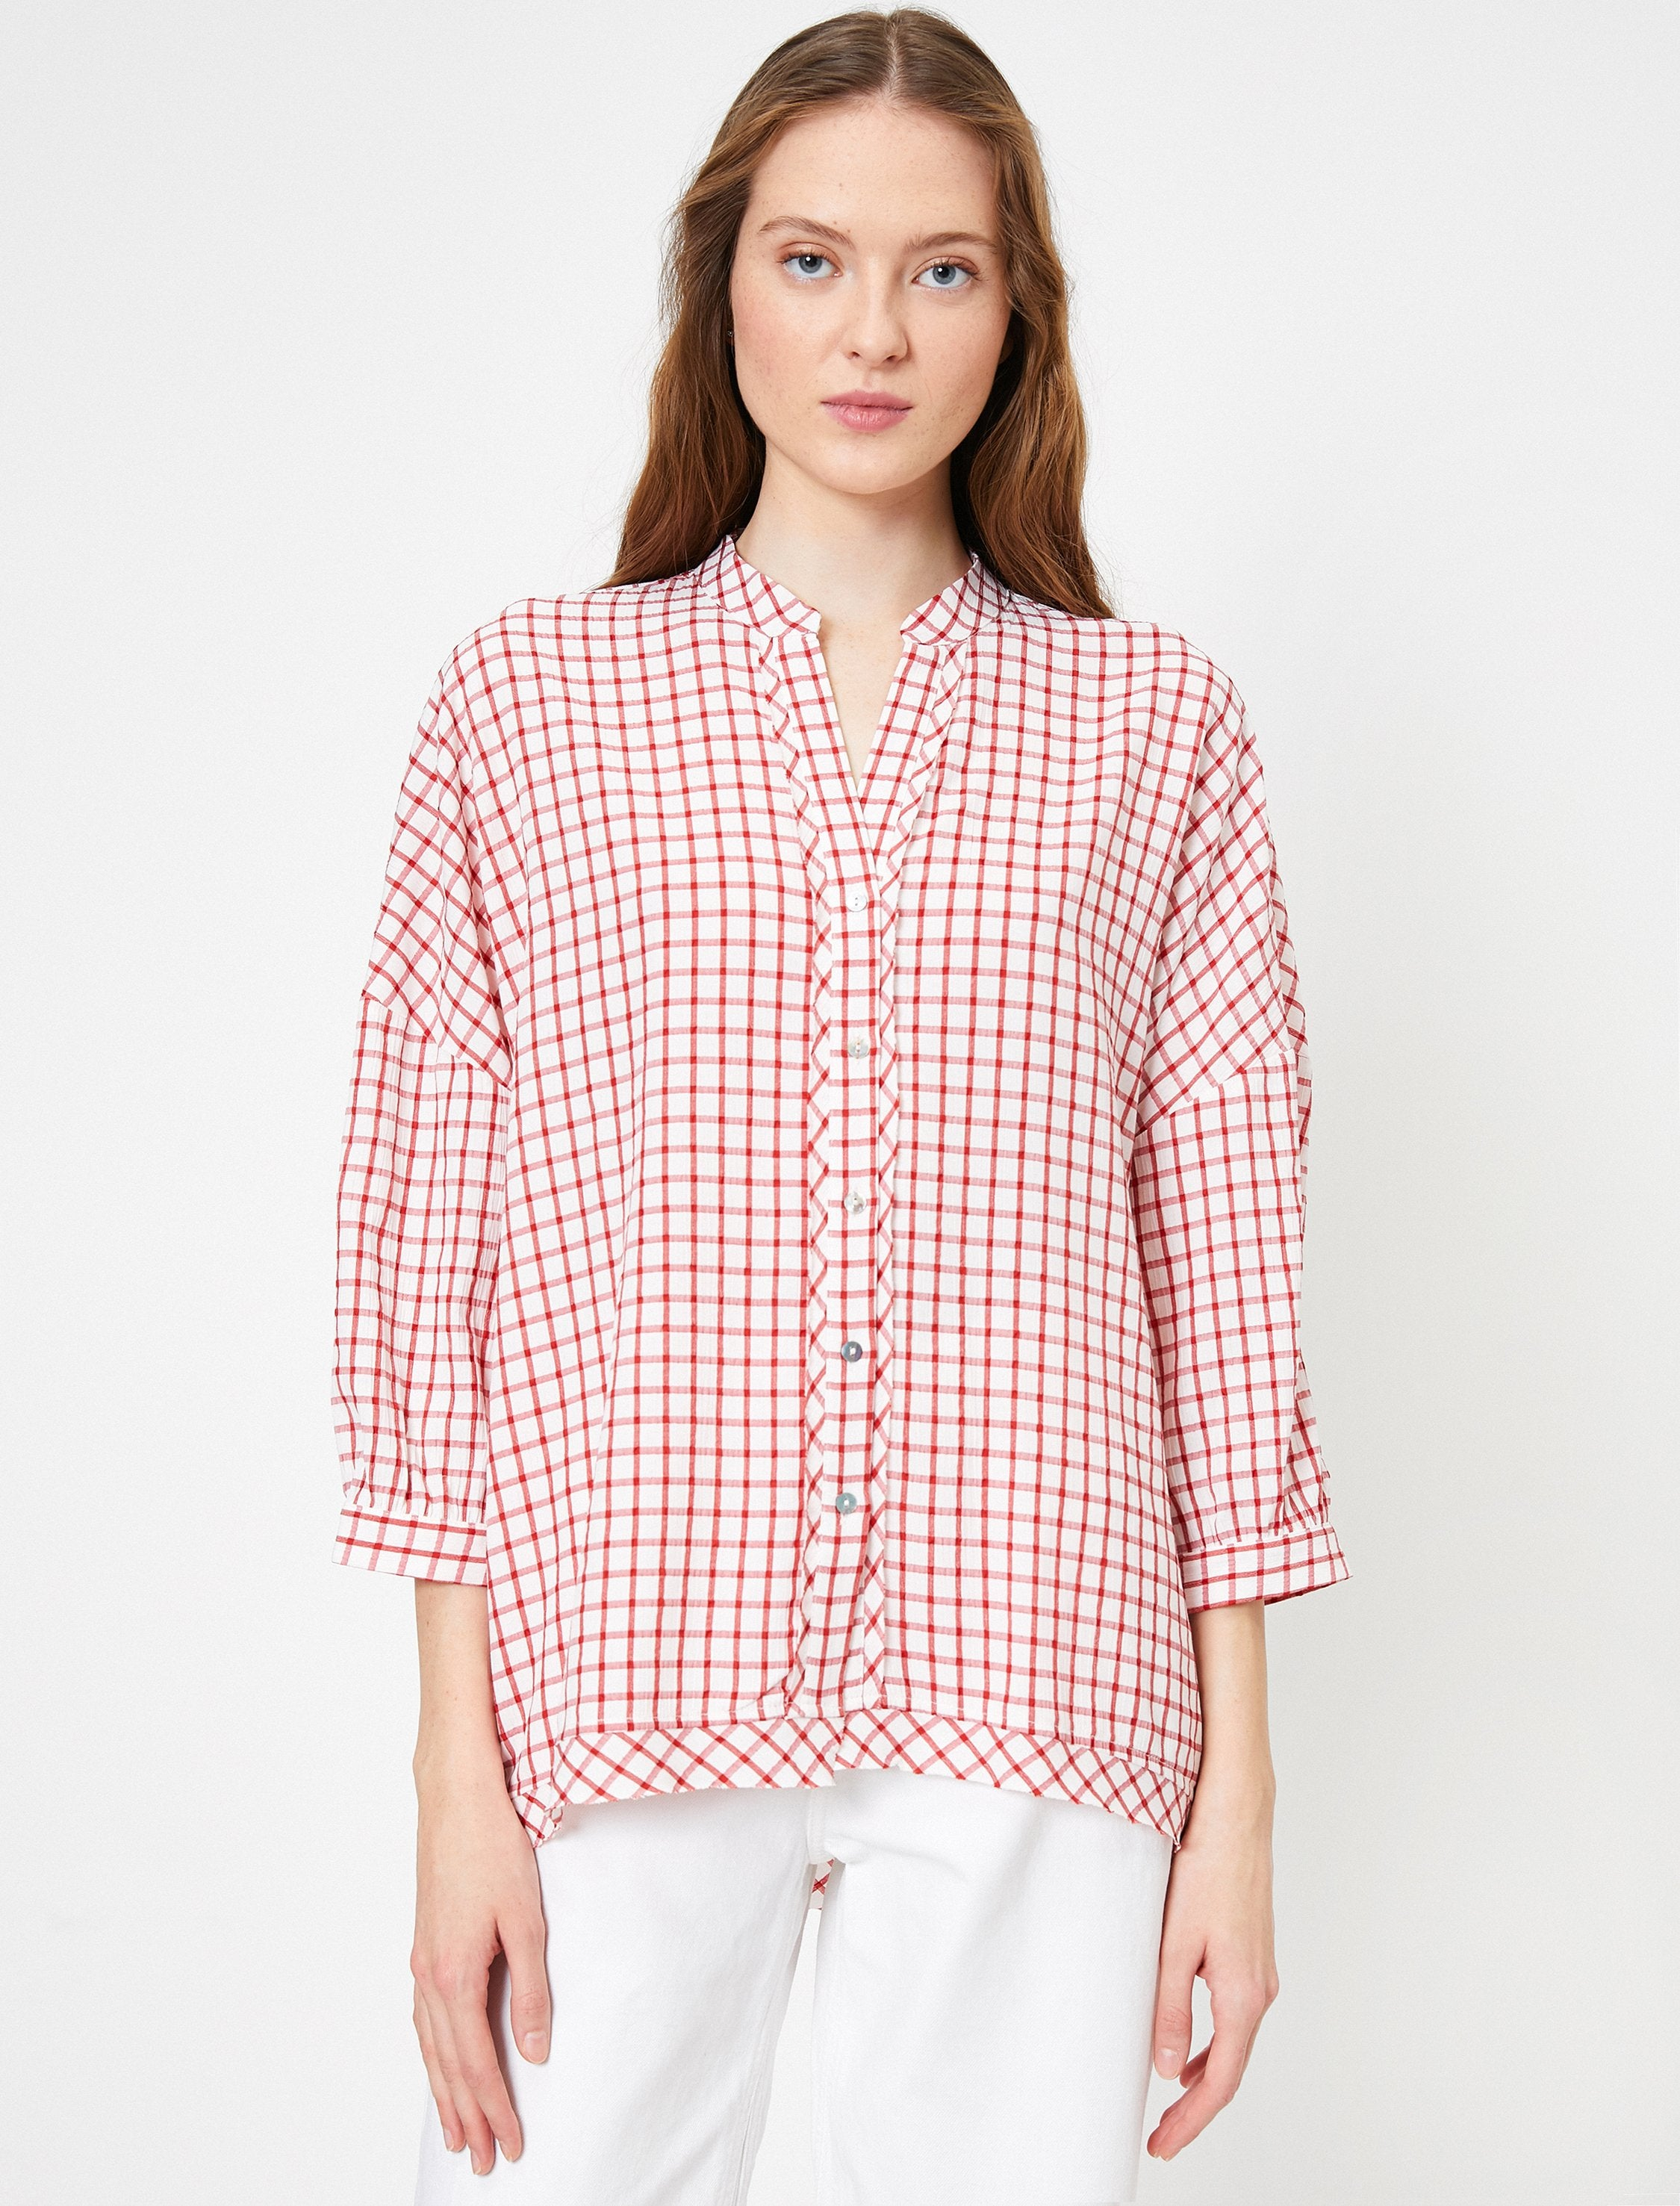 Oversized Boyfriend Check Shirt in Red